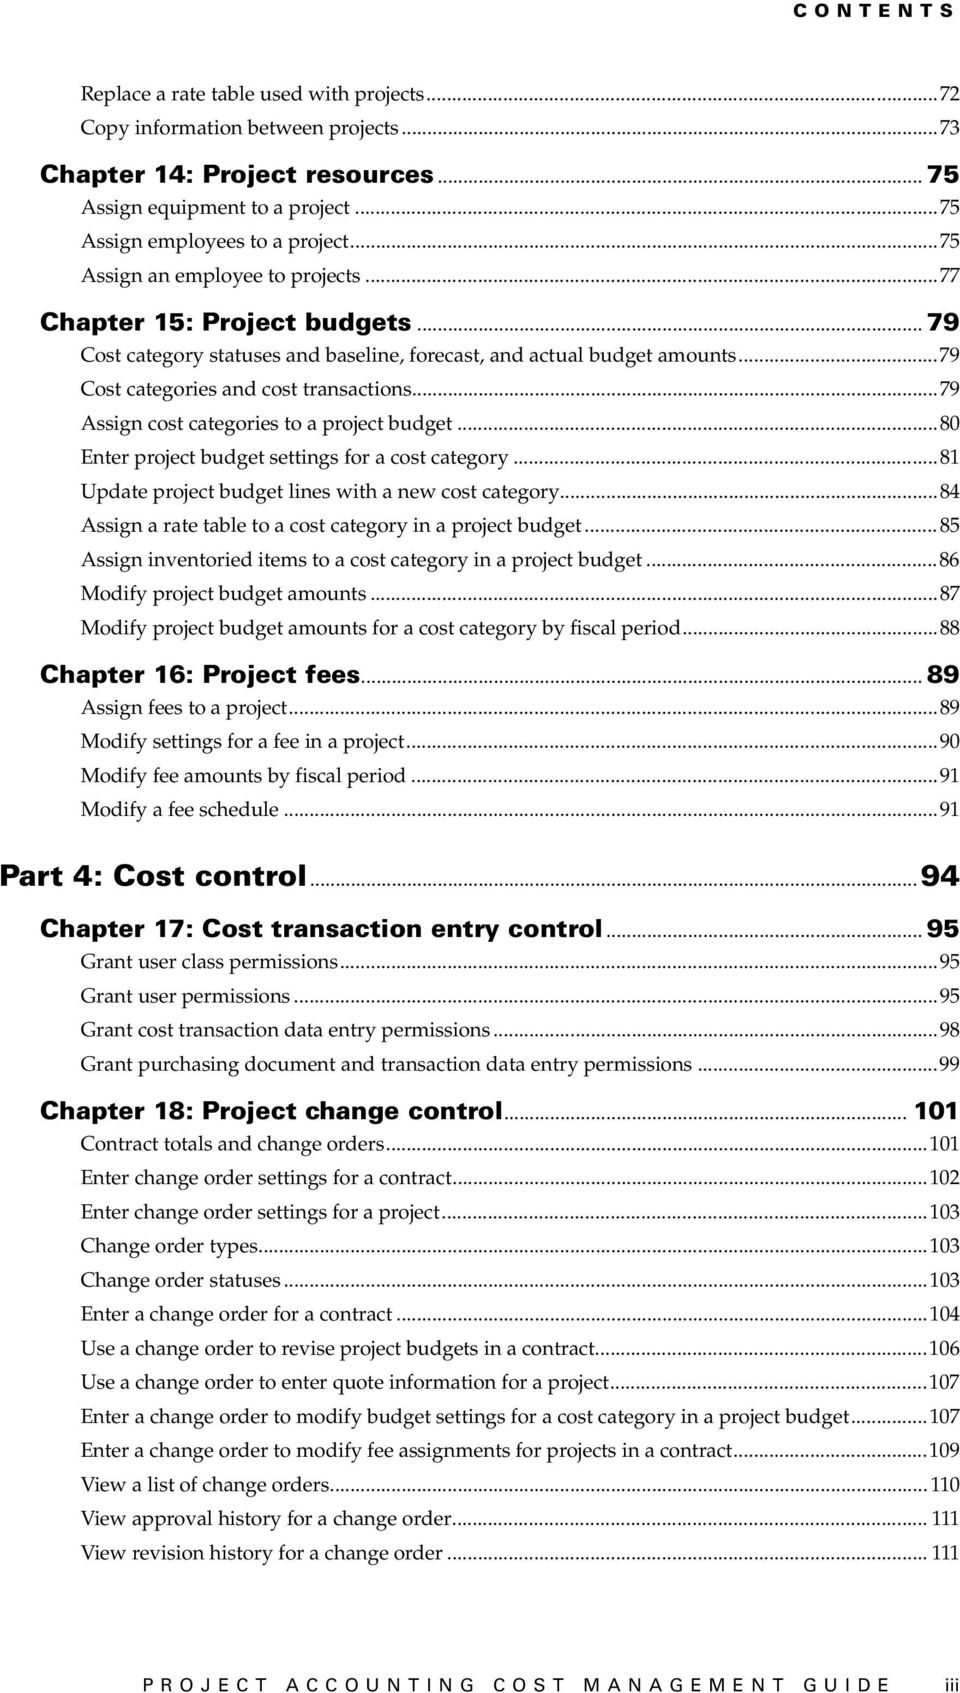 ..79 Assign cost categories to a project budget...80 Enter project budget settings for a cost category...81 Update project budget lines with a new cost category.